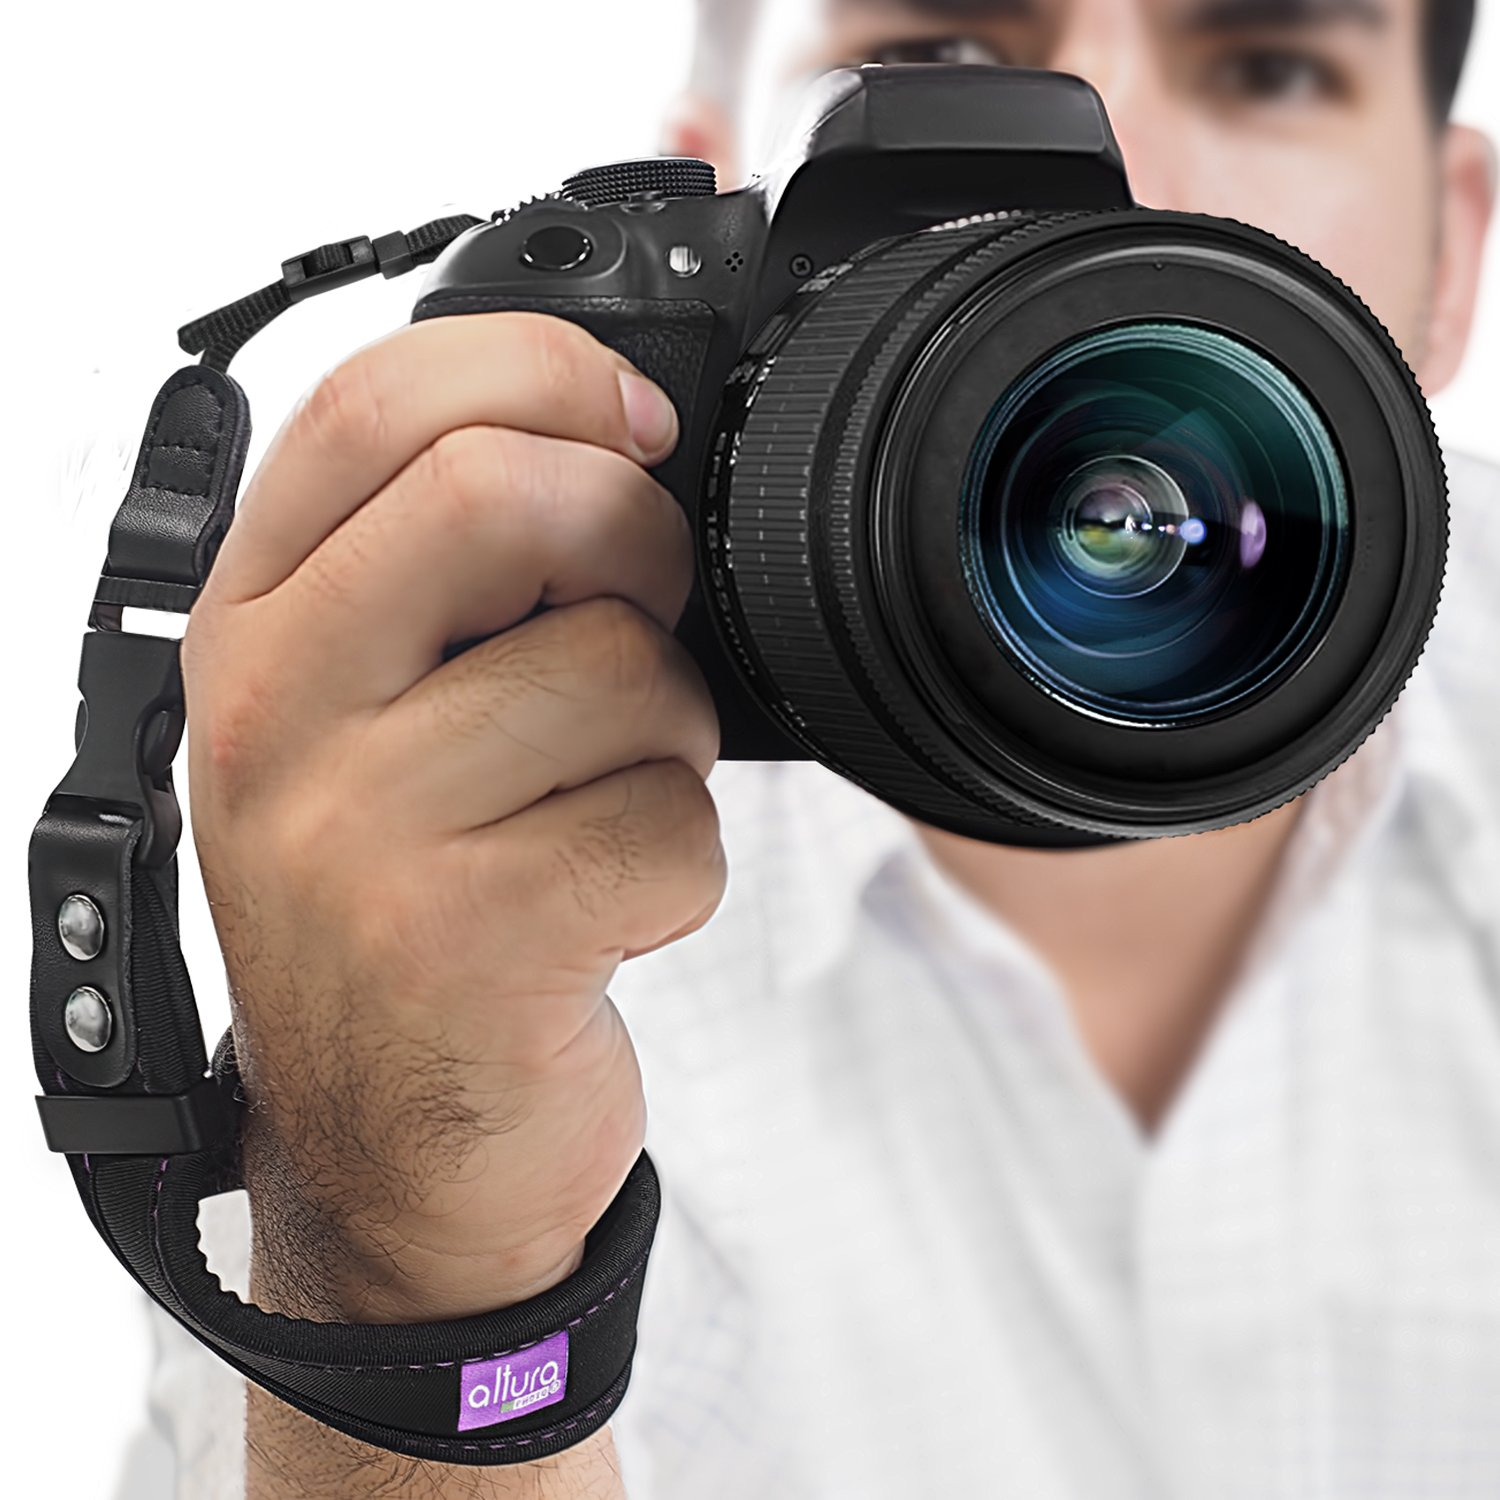 Camera Hand Strap - Rapid Fire Heavy Duty Safety Wrist Strap by Altura Photo w/ 2 Alternate Connections for Use w/ Large DSLR or Point & Shoot Cameras (2016 Update)